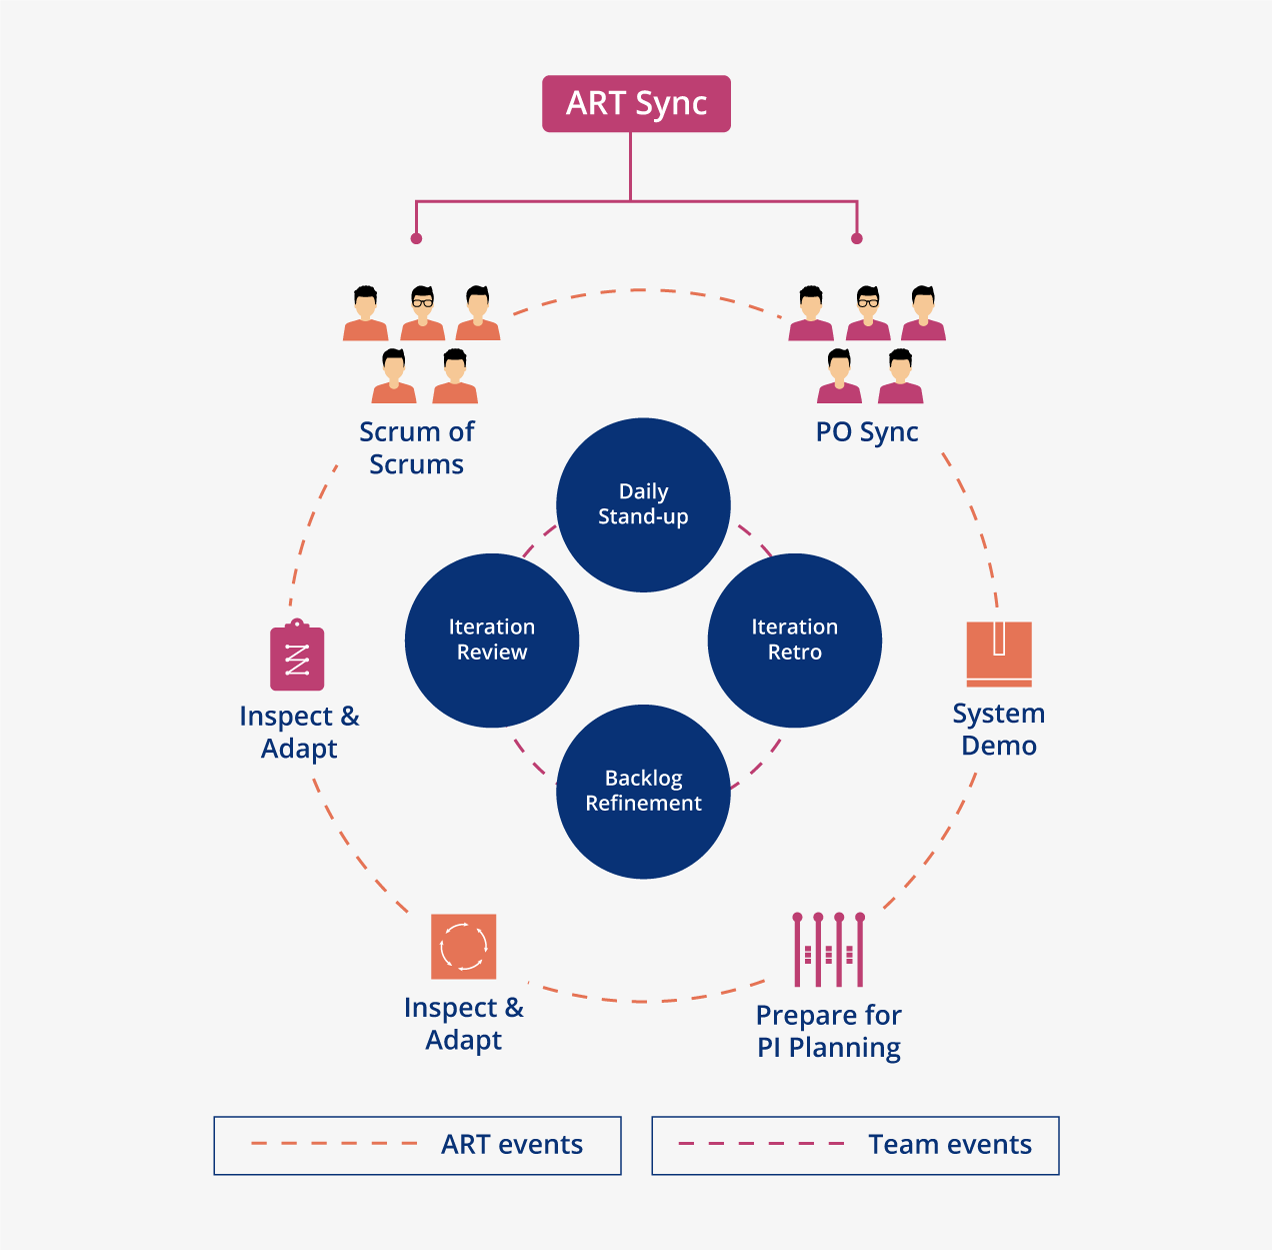 Prescribed events on a typical Agile release train (ART)